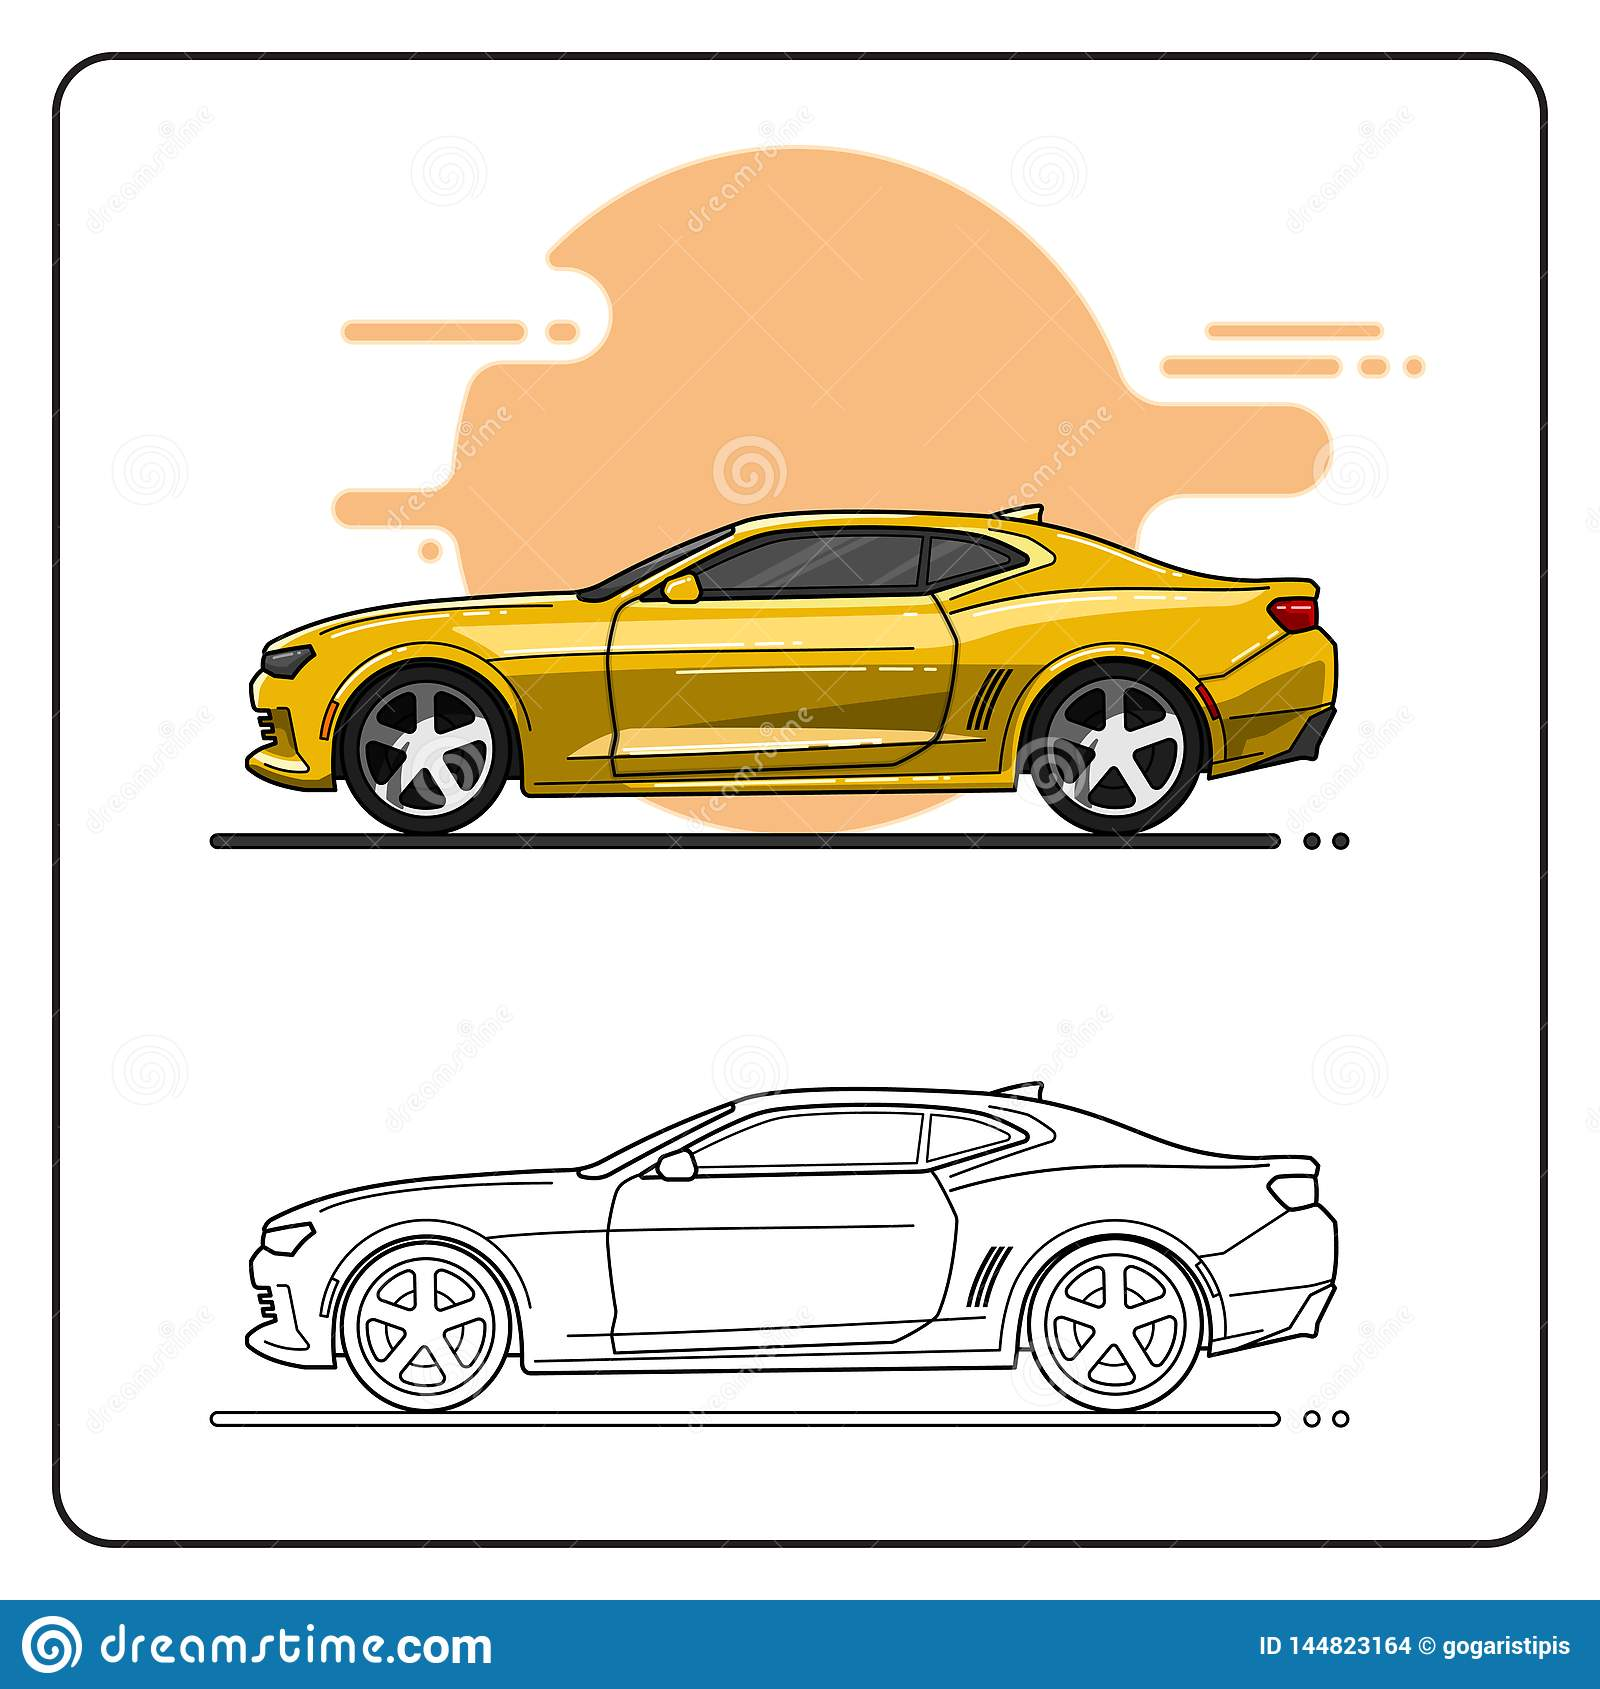 Yellow Super Cars Side View Stock Vector - Illustration of line